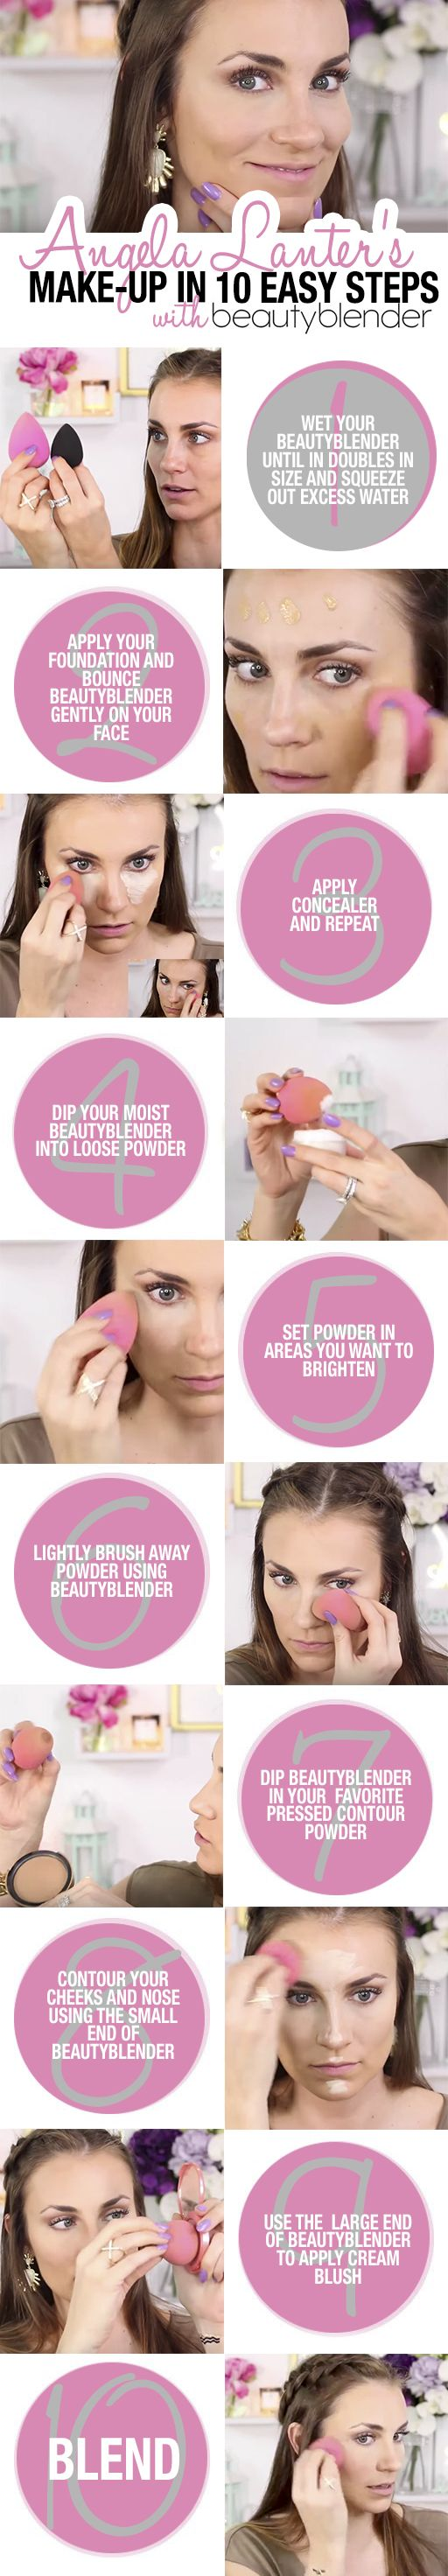 Full face makeup tutorial using a beautyblender in 10 steps. #HelloGorgeous Eyebrow Makeup Tips